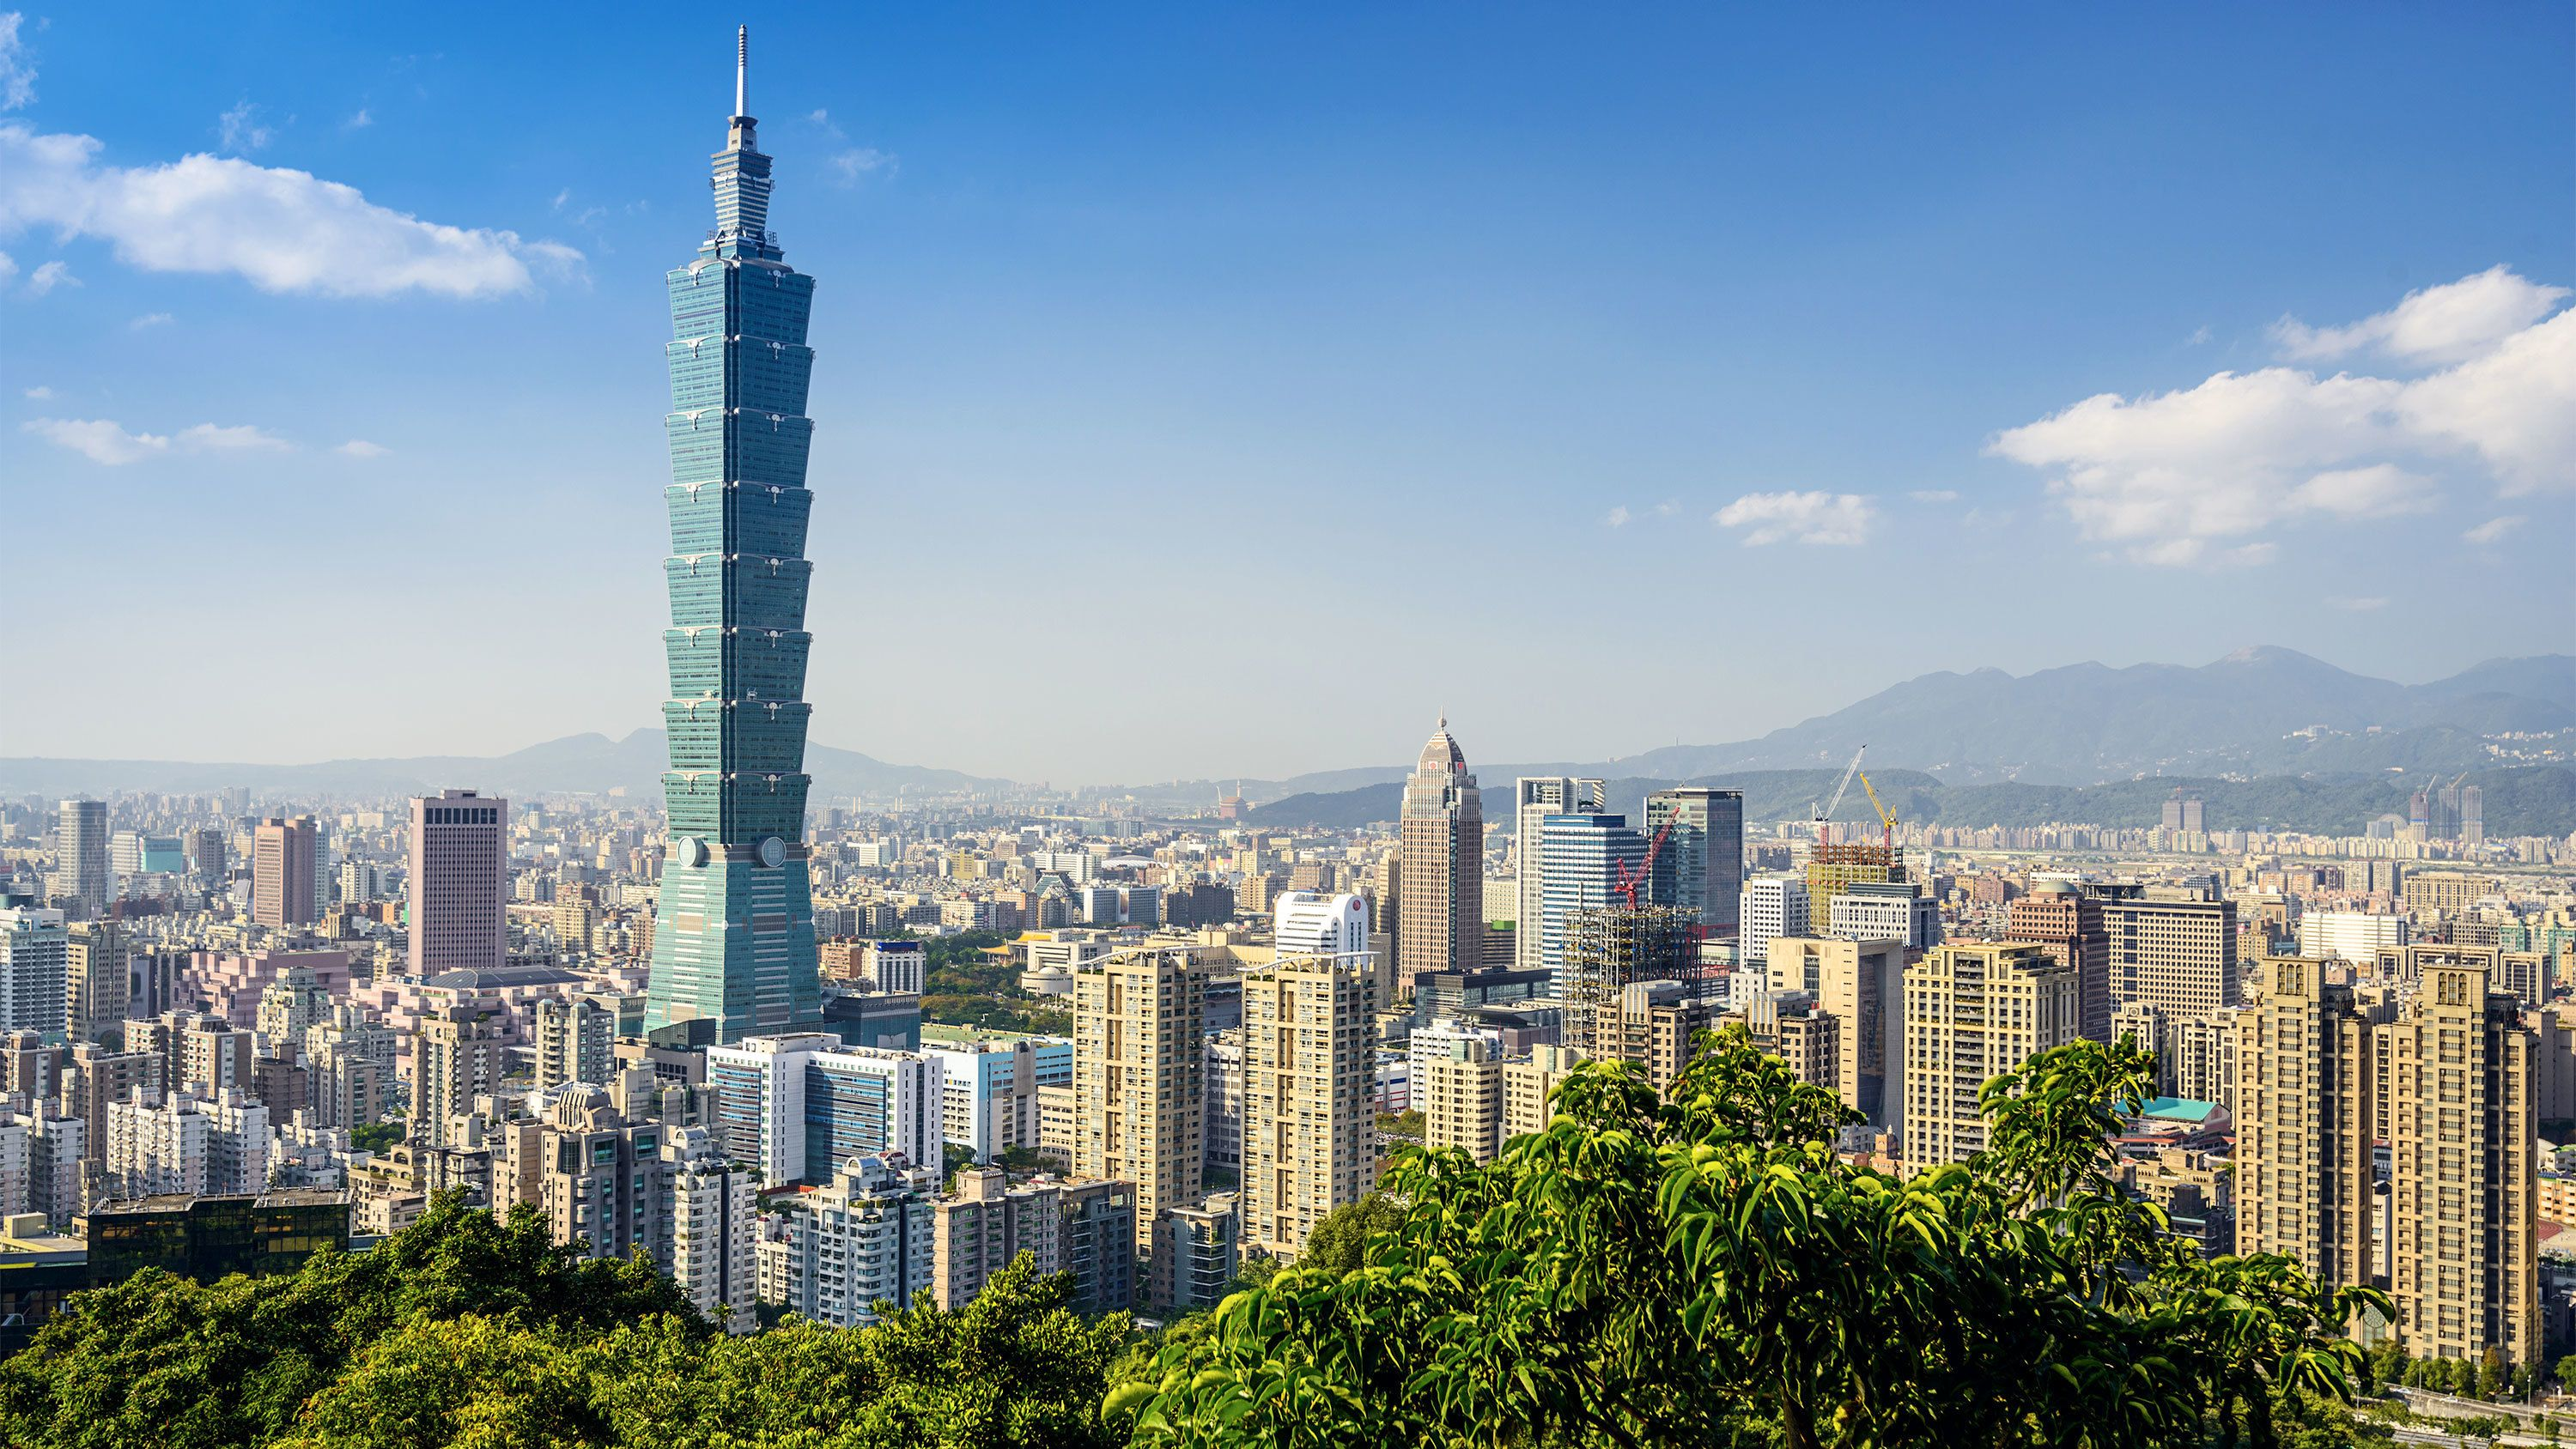 Panoramic view of Taiwan on a sunny day